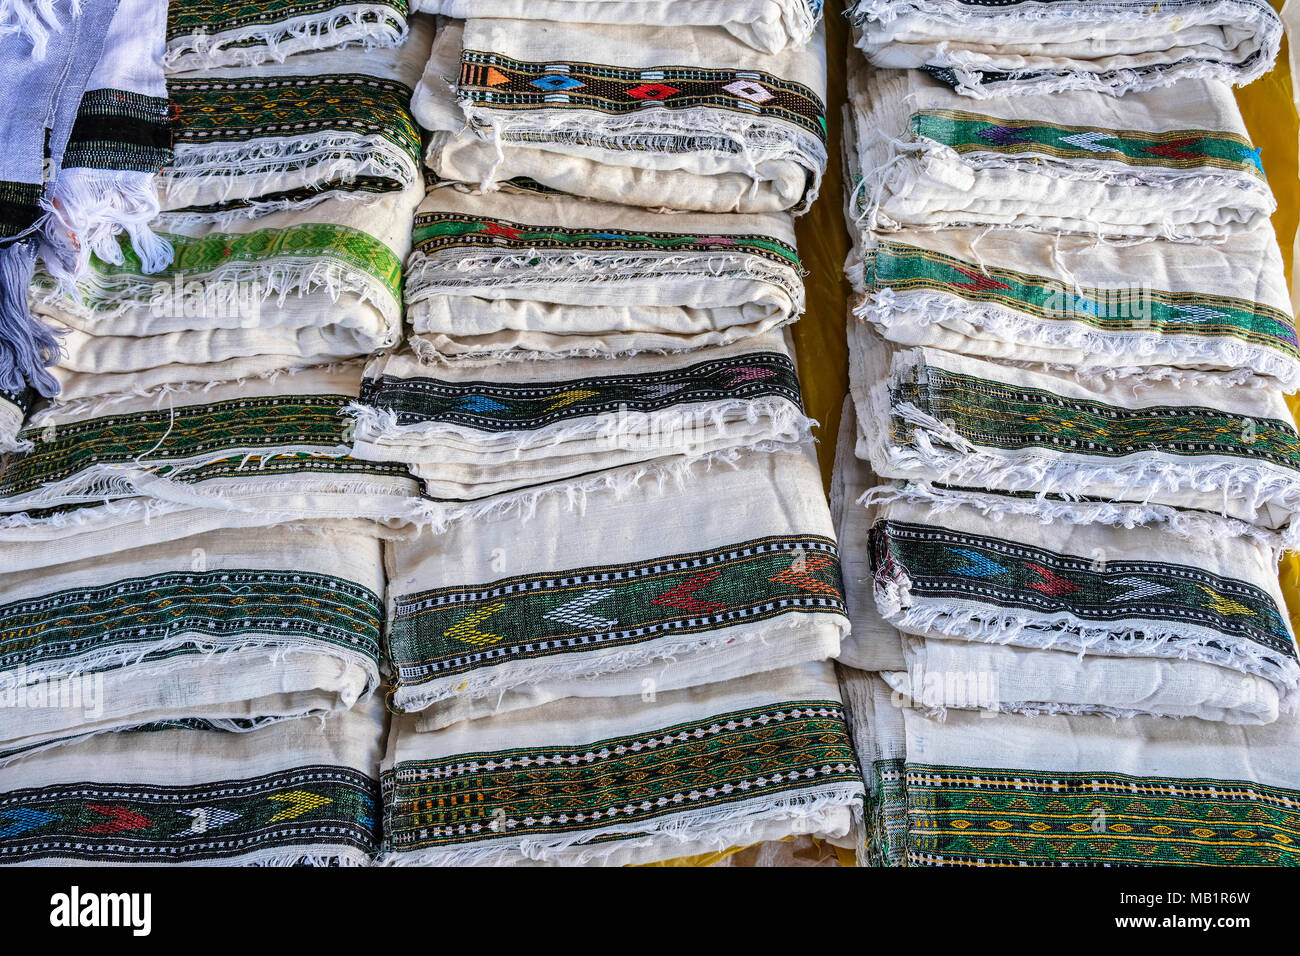 Colorful traditional Ethiopian textiles at a market in Hawzien, Tigray region, Ethiopia. - Stock Image